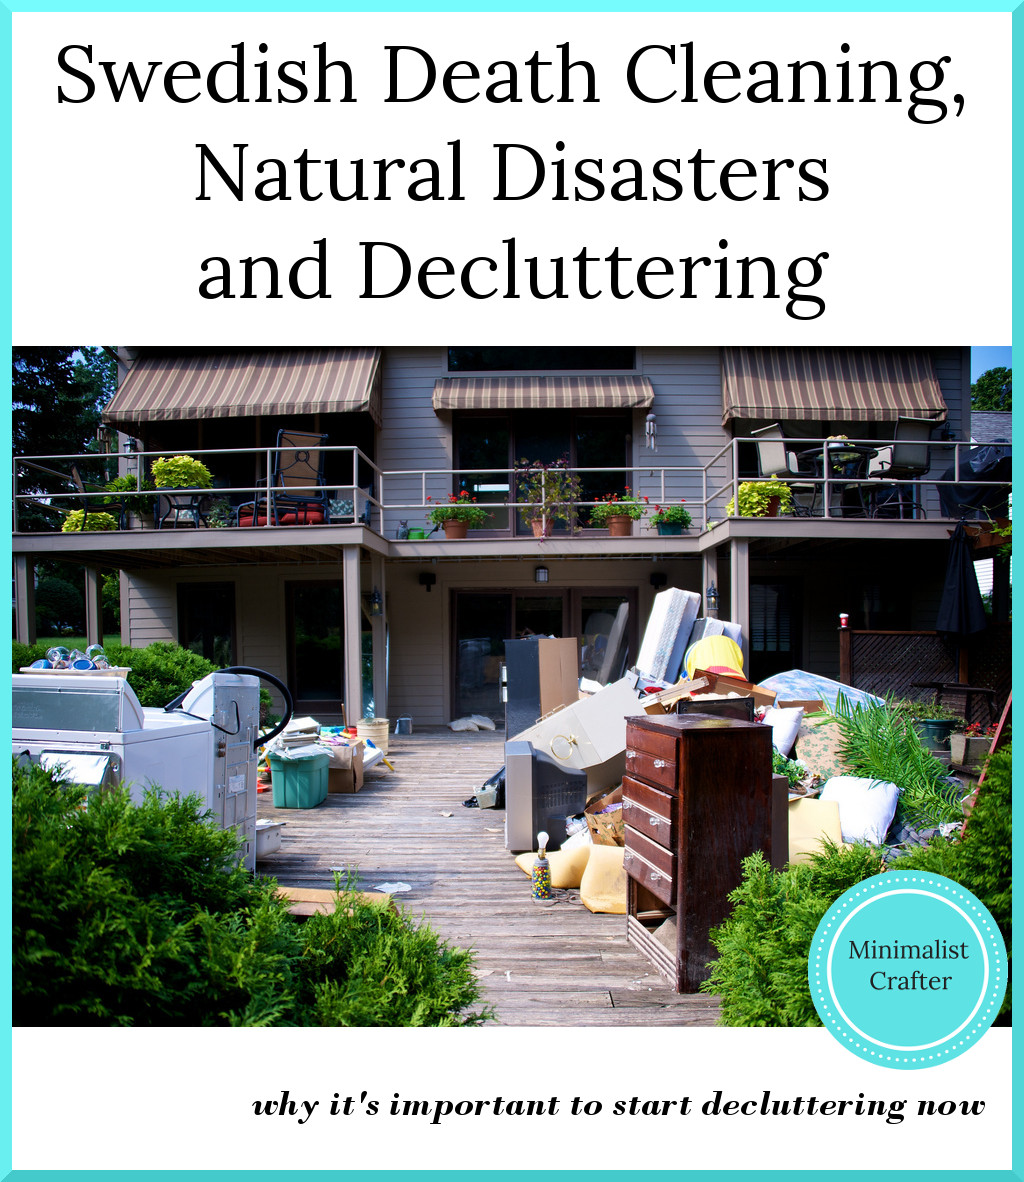 What Swedish Death Cleaning and natural disasters can teach us about the need to declutter now.